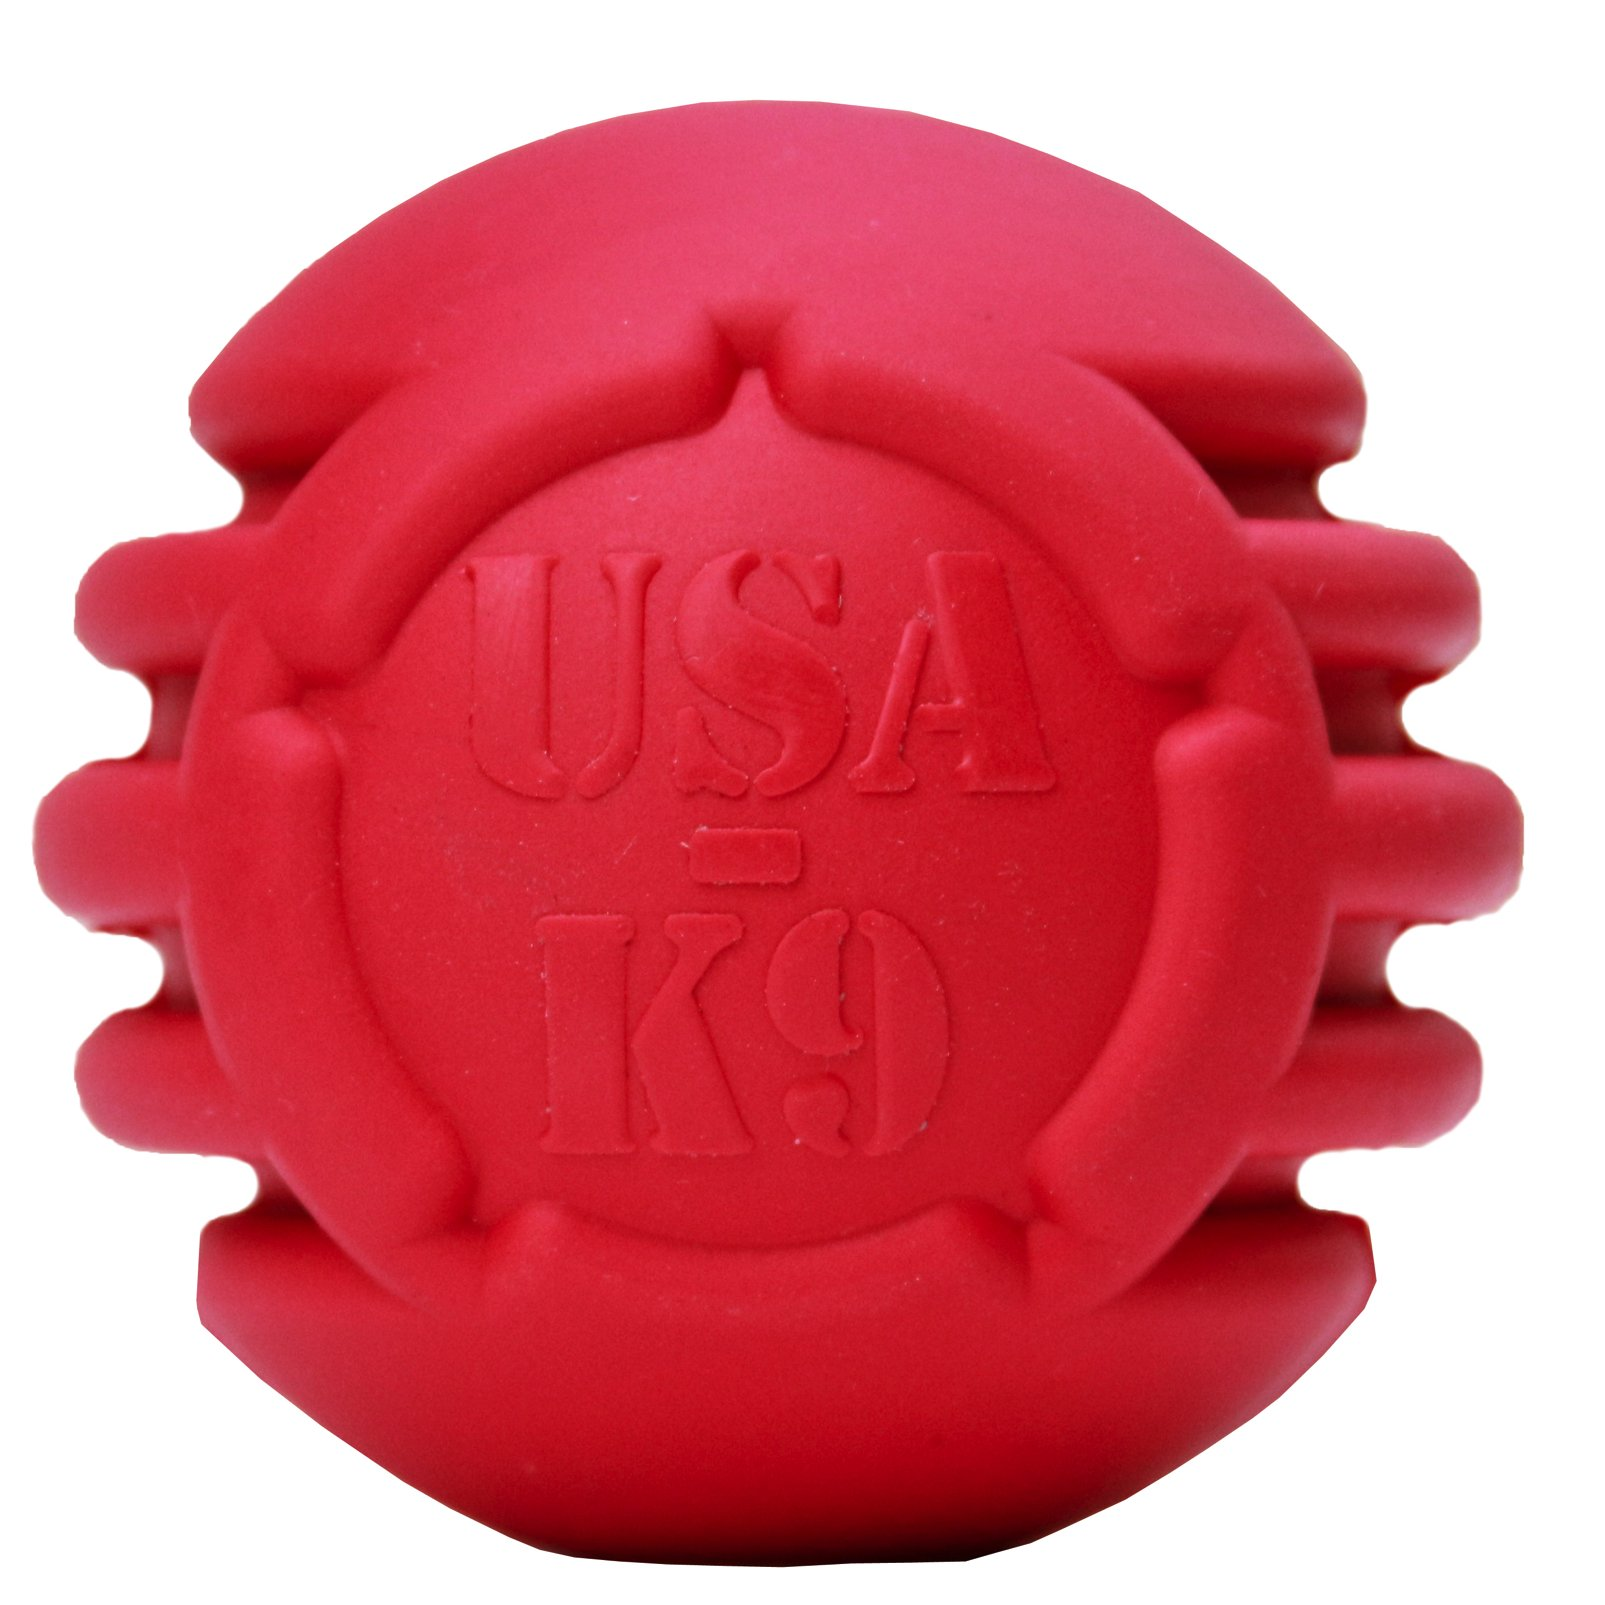 USA-K9: Stars and Tripes Treat Dispenser Ball Great Cew Dog Toy made with Natural Rubber Crazy Bouncer USA Made